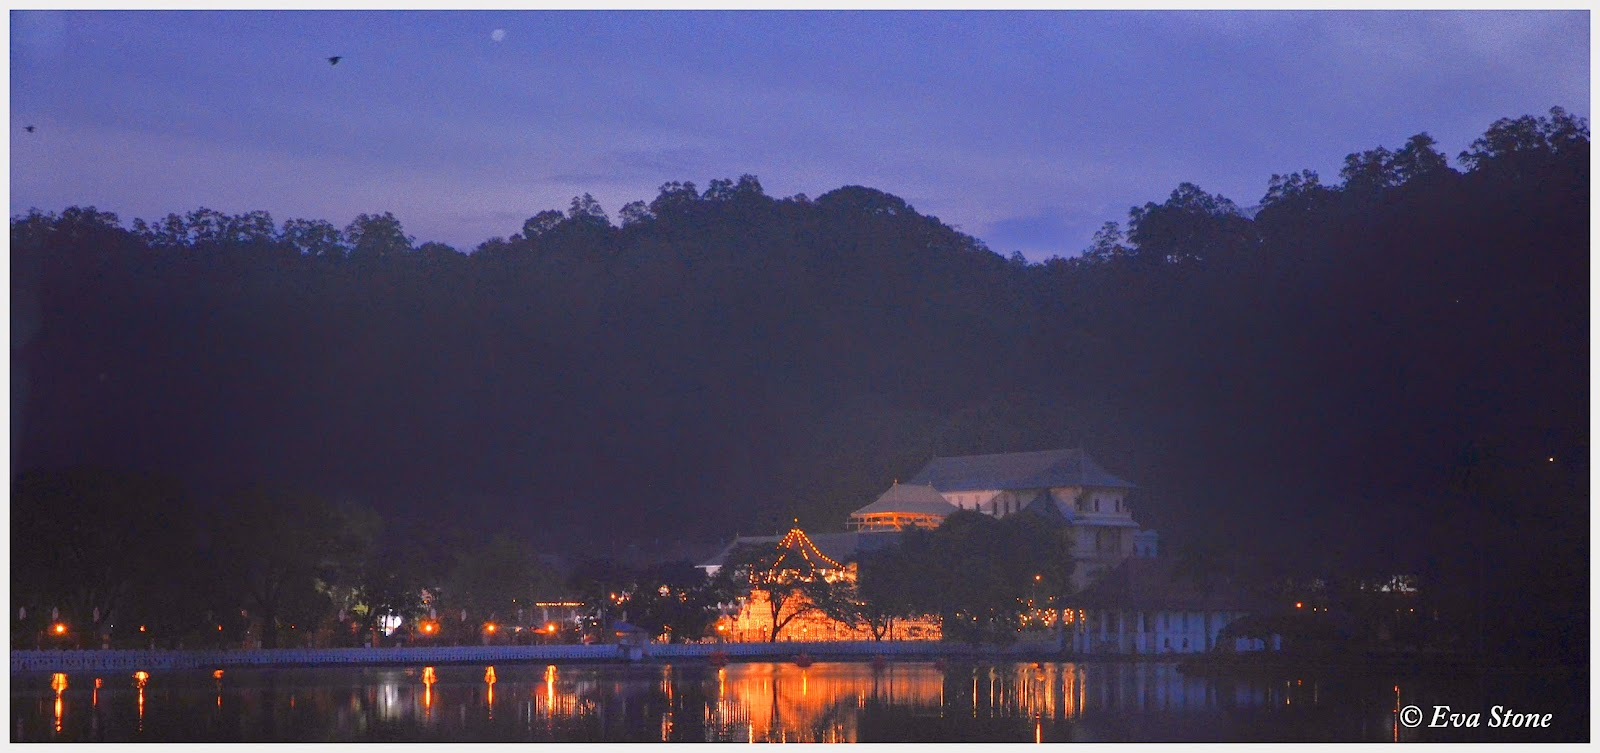 Eva Stone photo, pre-dawn, Wesak, Kandy Lake, Sri Dalada Maligawa, Temple of the Tooth